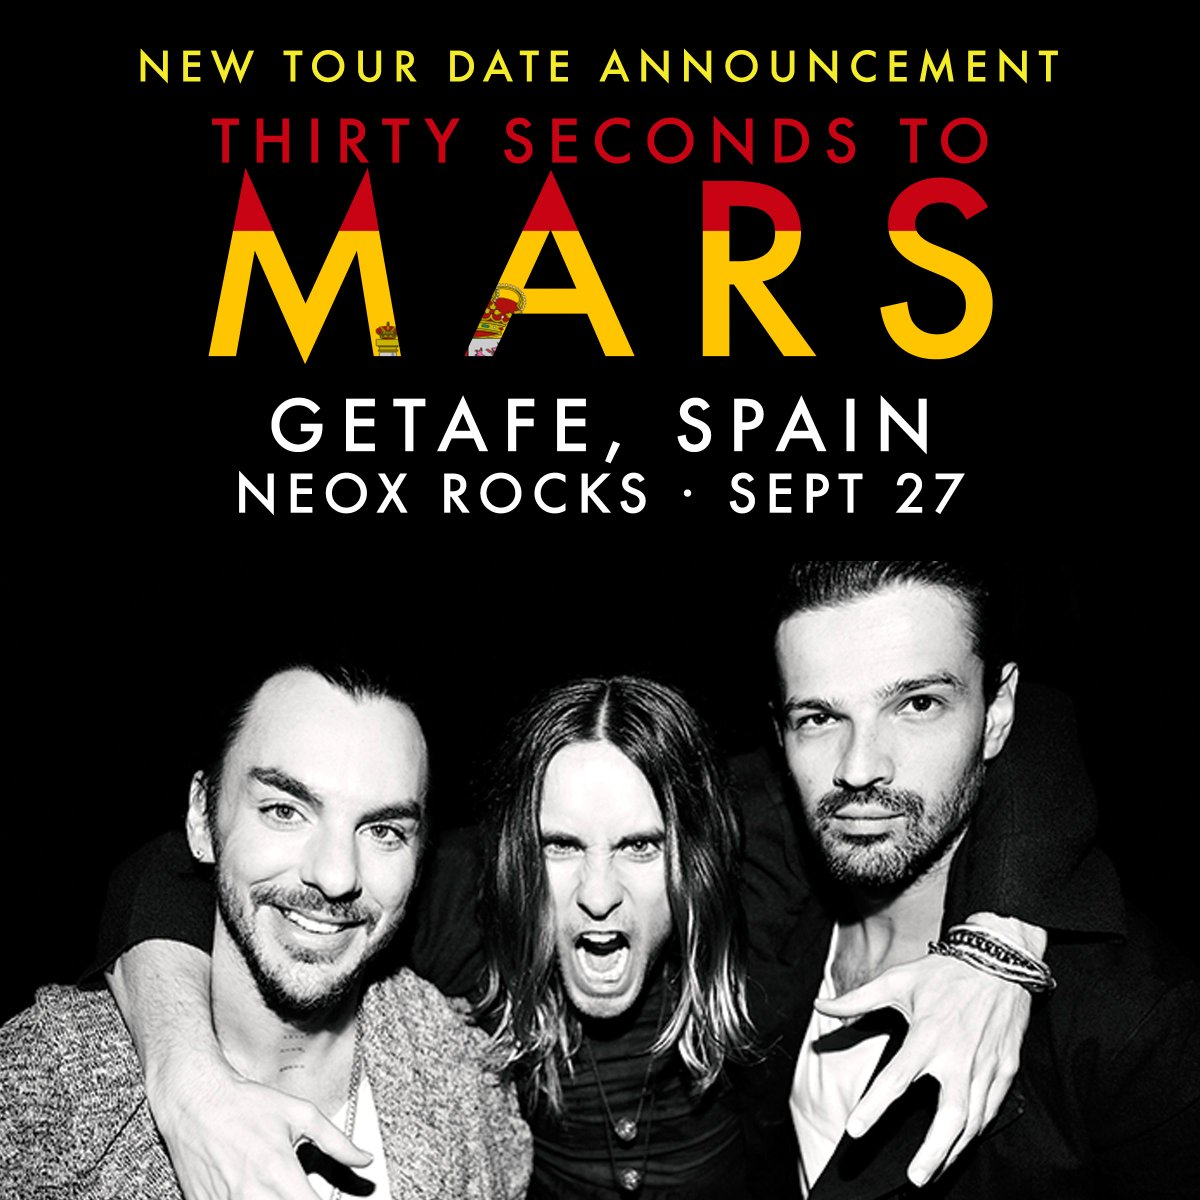 Entradas están a la venta! Ready, GETAFE? Sales for #MarsInSpain SEPT 27 are NOW ON SALE!  http://t.co/7dsrJLwmtT http://t.co/i9b24MfVNG